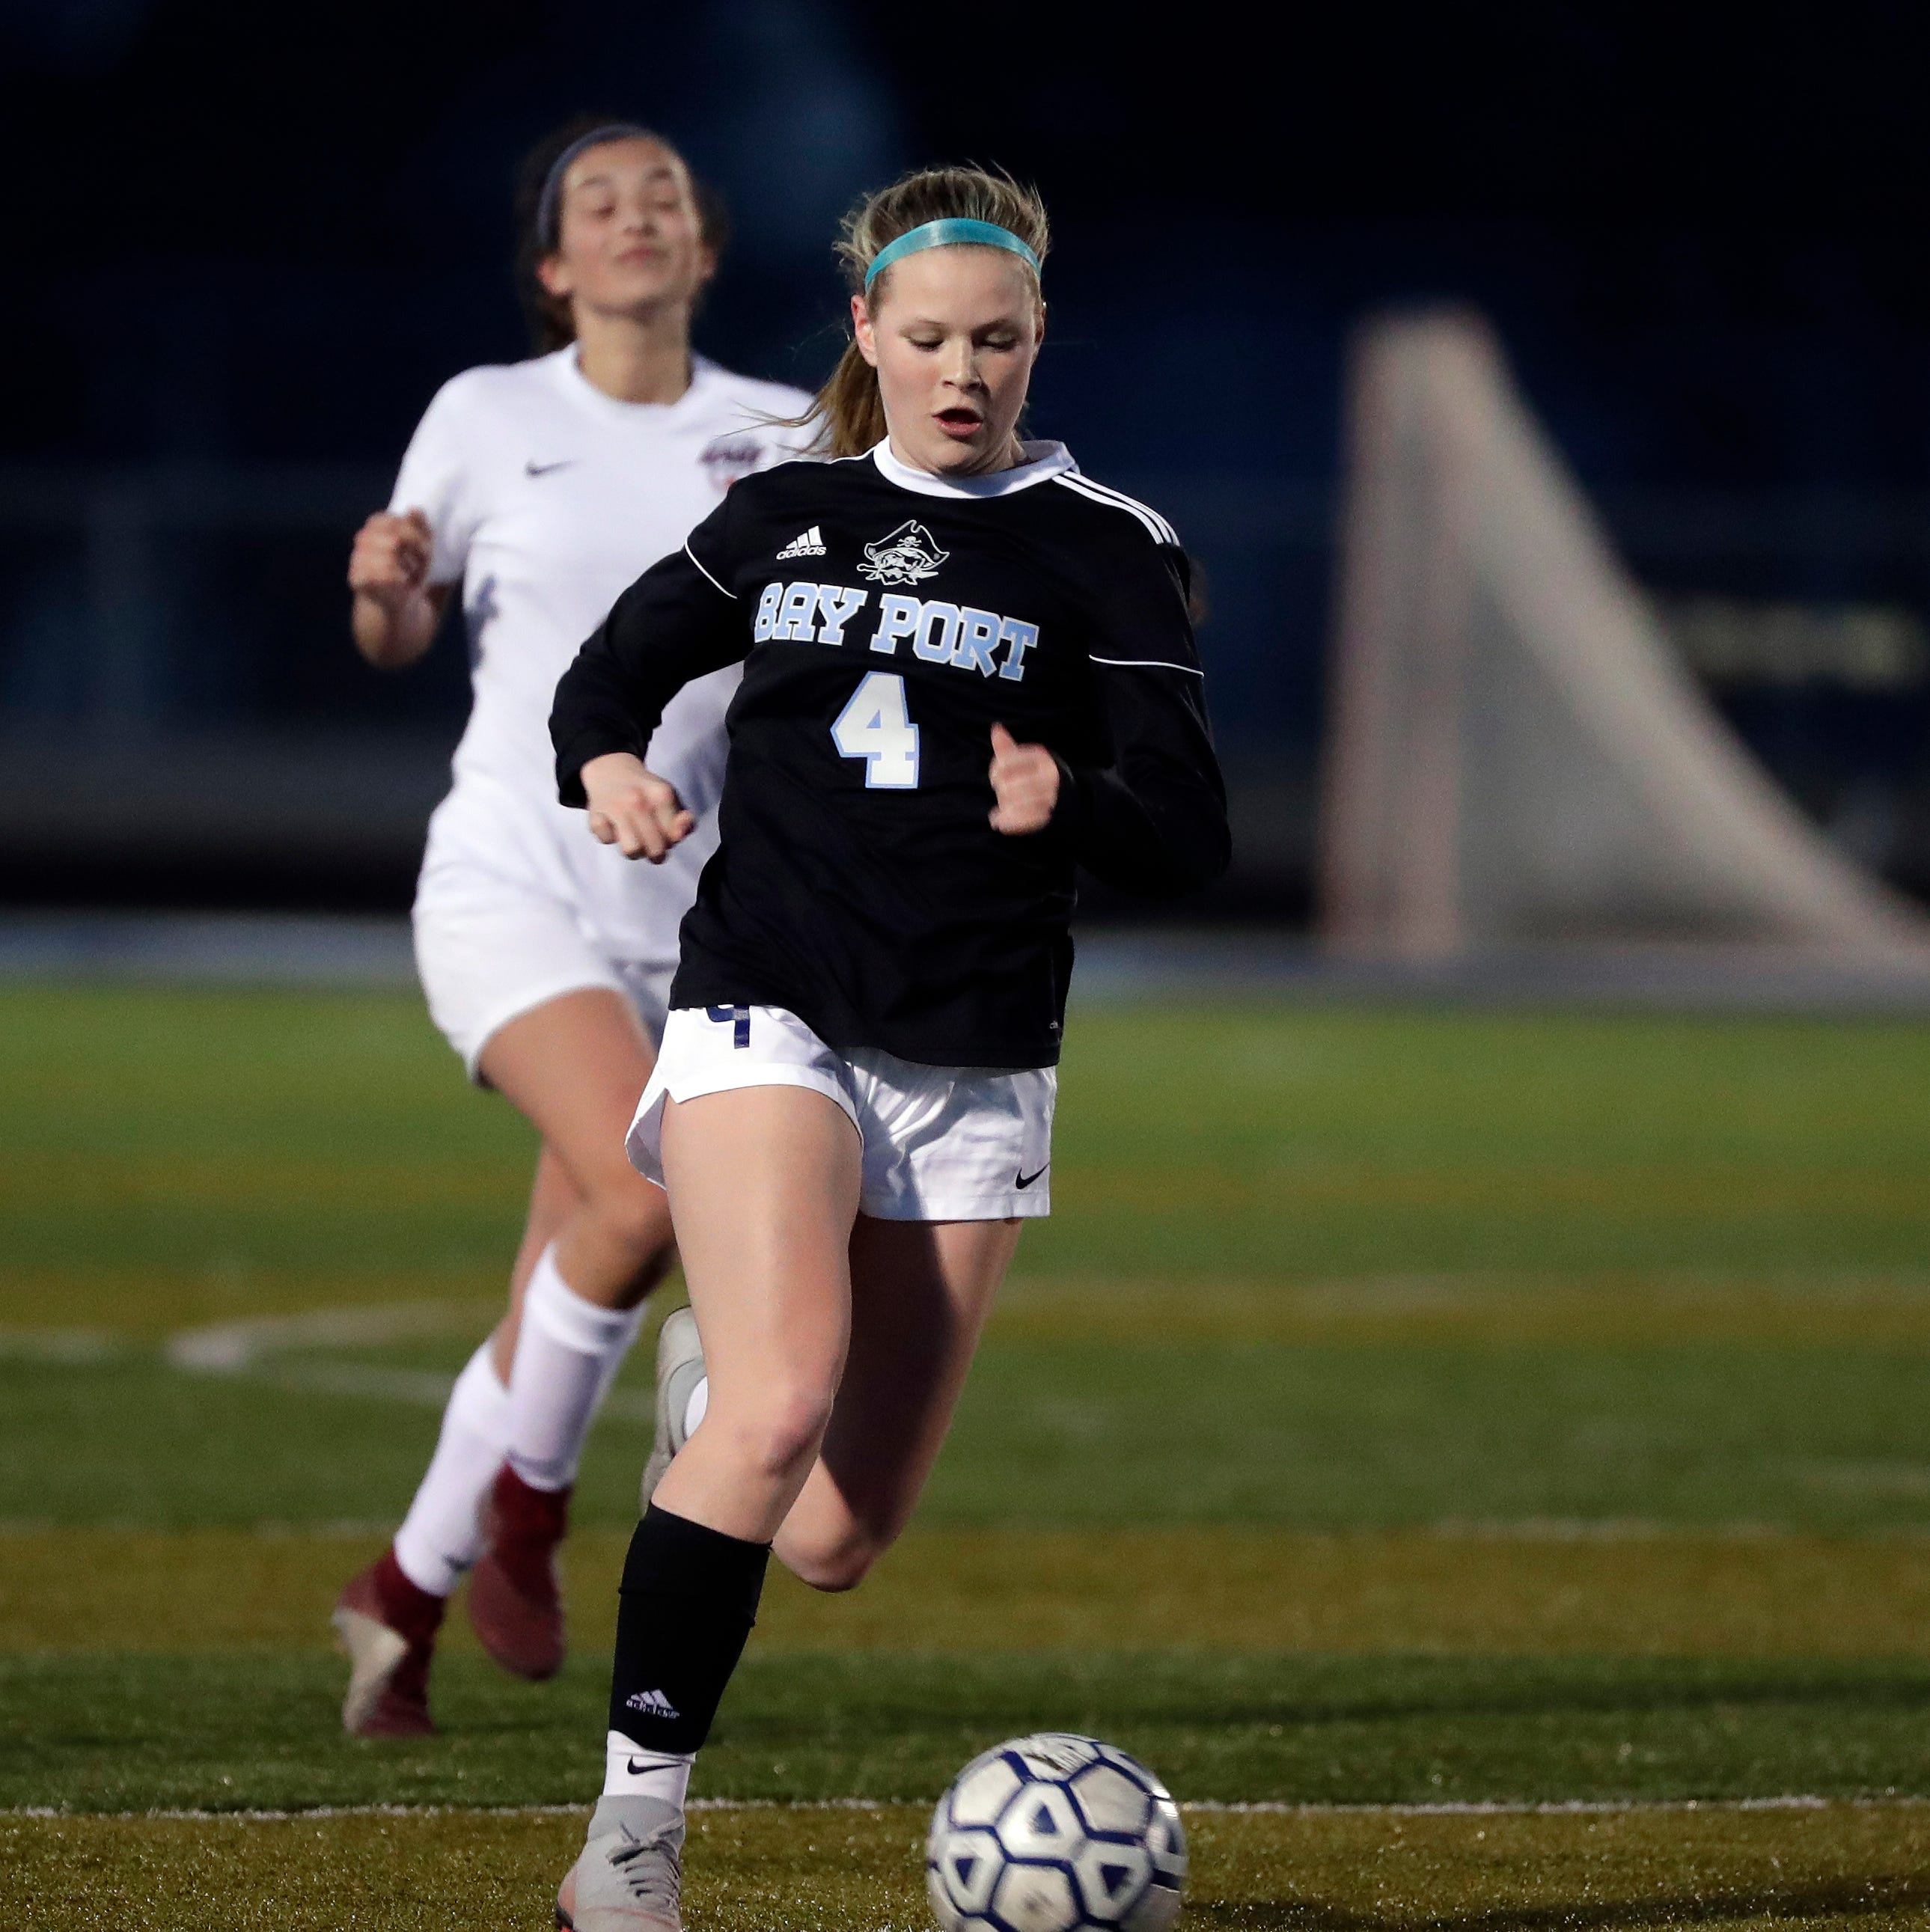 Bay Port girls soccer team 'hungry for something more'